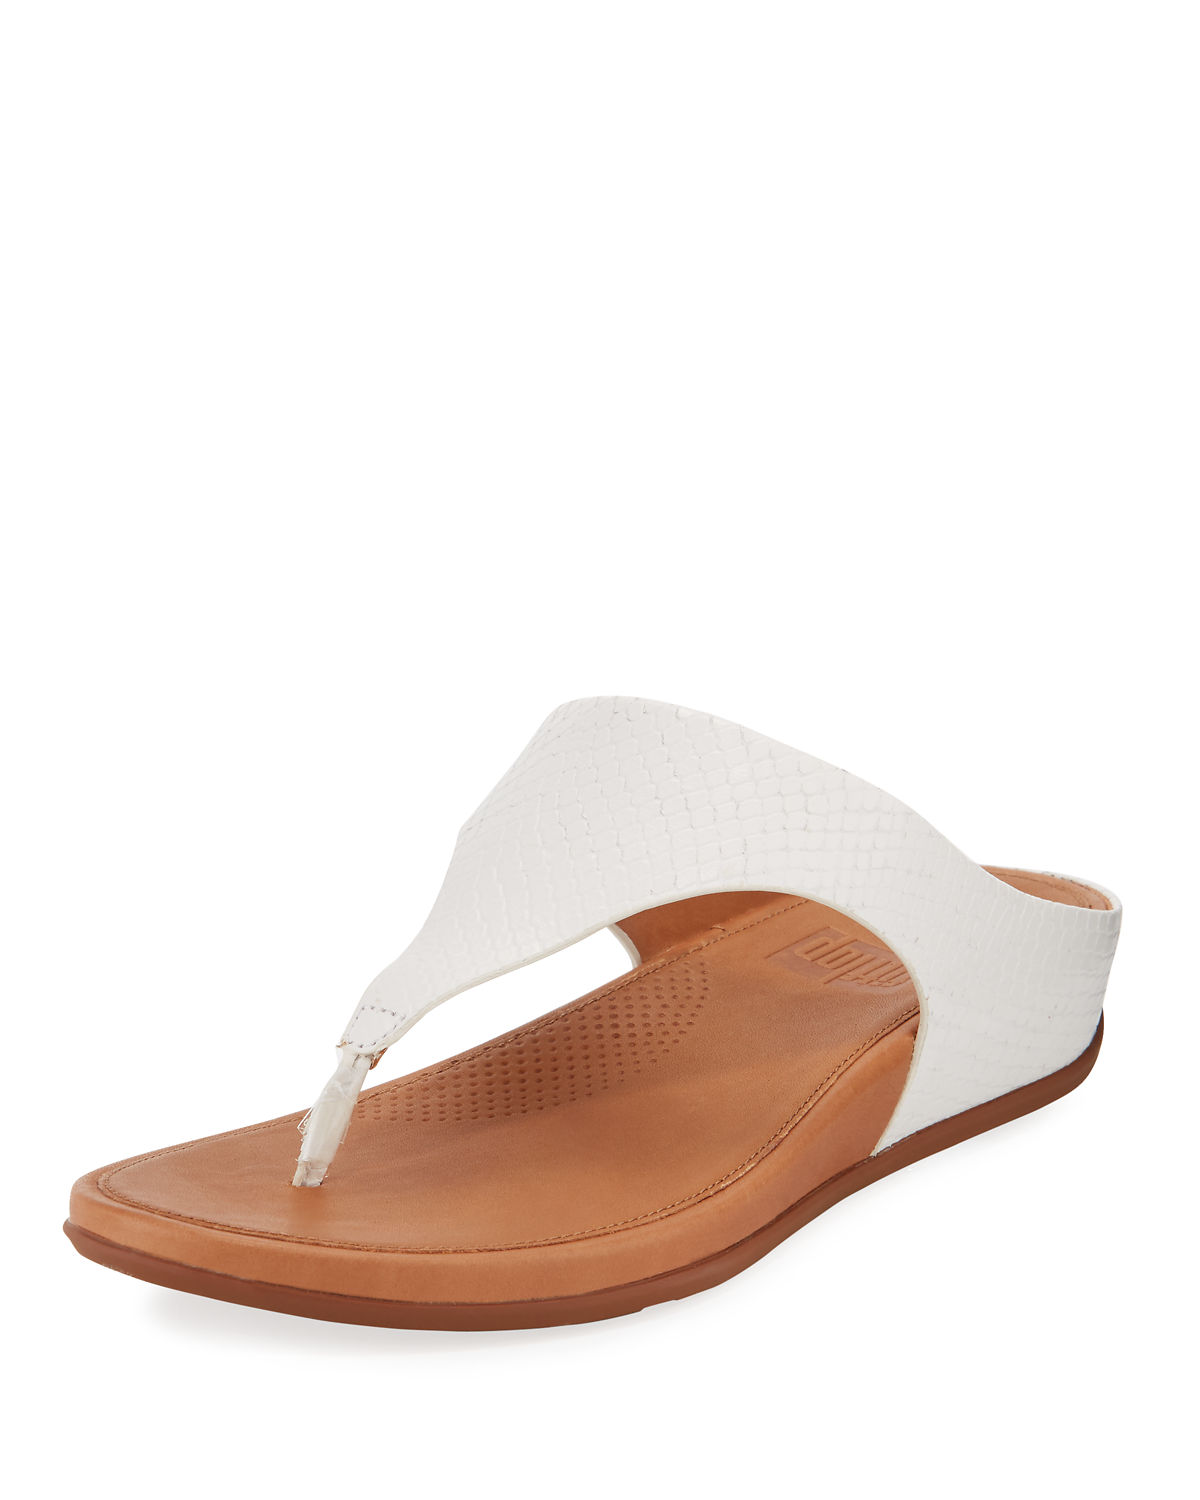 Fitflop Sandals BANDA SNAKE-EMBOSSED THONG SANDALS